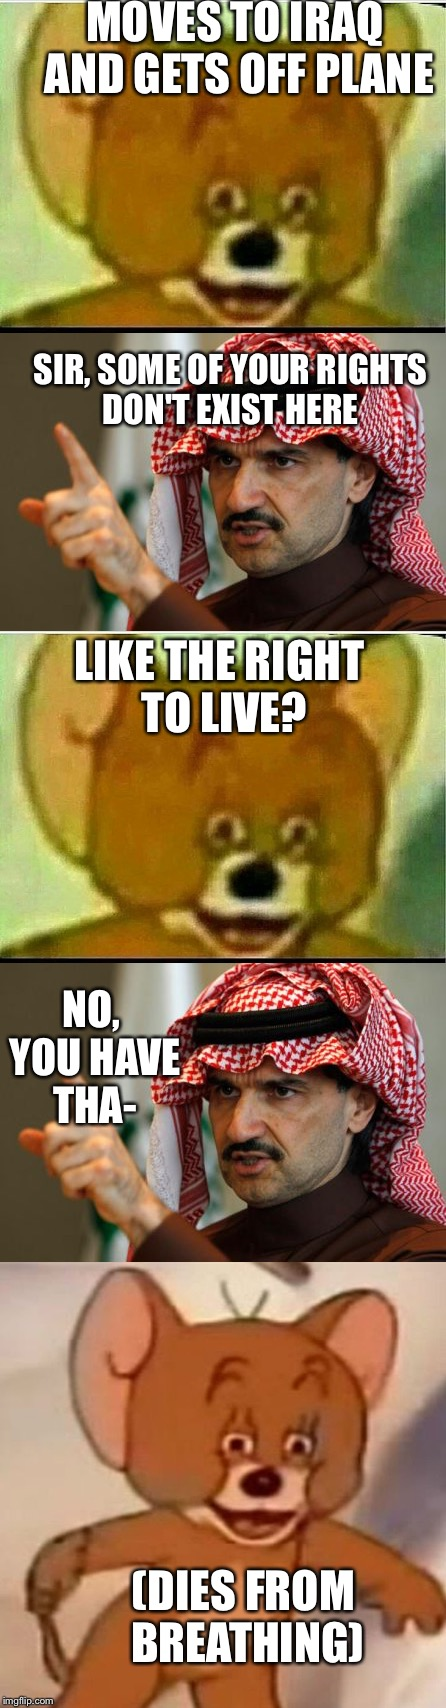 My dad kills sychotic mouse | MOVES TO IRAQ AND GETS OFF PLANE SIR, SOME OF YOUR RIGHTS DON'T EXIST HERE LIKE THE RIGHT TO LIVE? NO, YOU HAVE THA- (DIES FROM BREATHING) | image tagged in jerry,arab,suicide,shitty meme | made w/ Imgflip meme maker